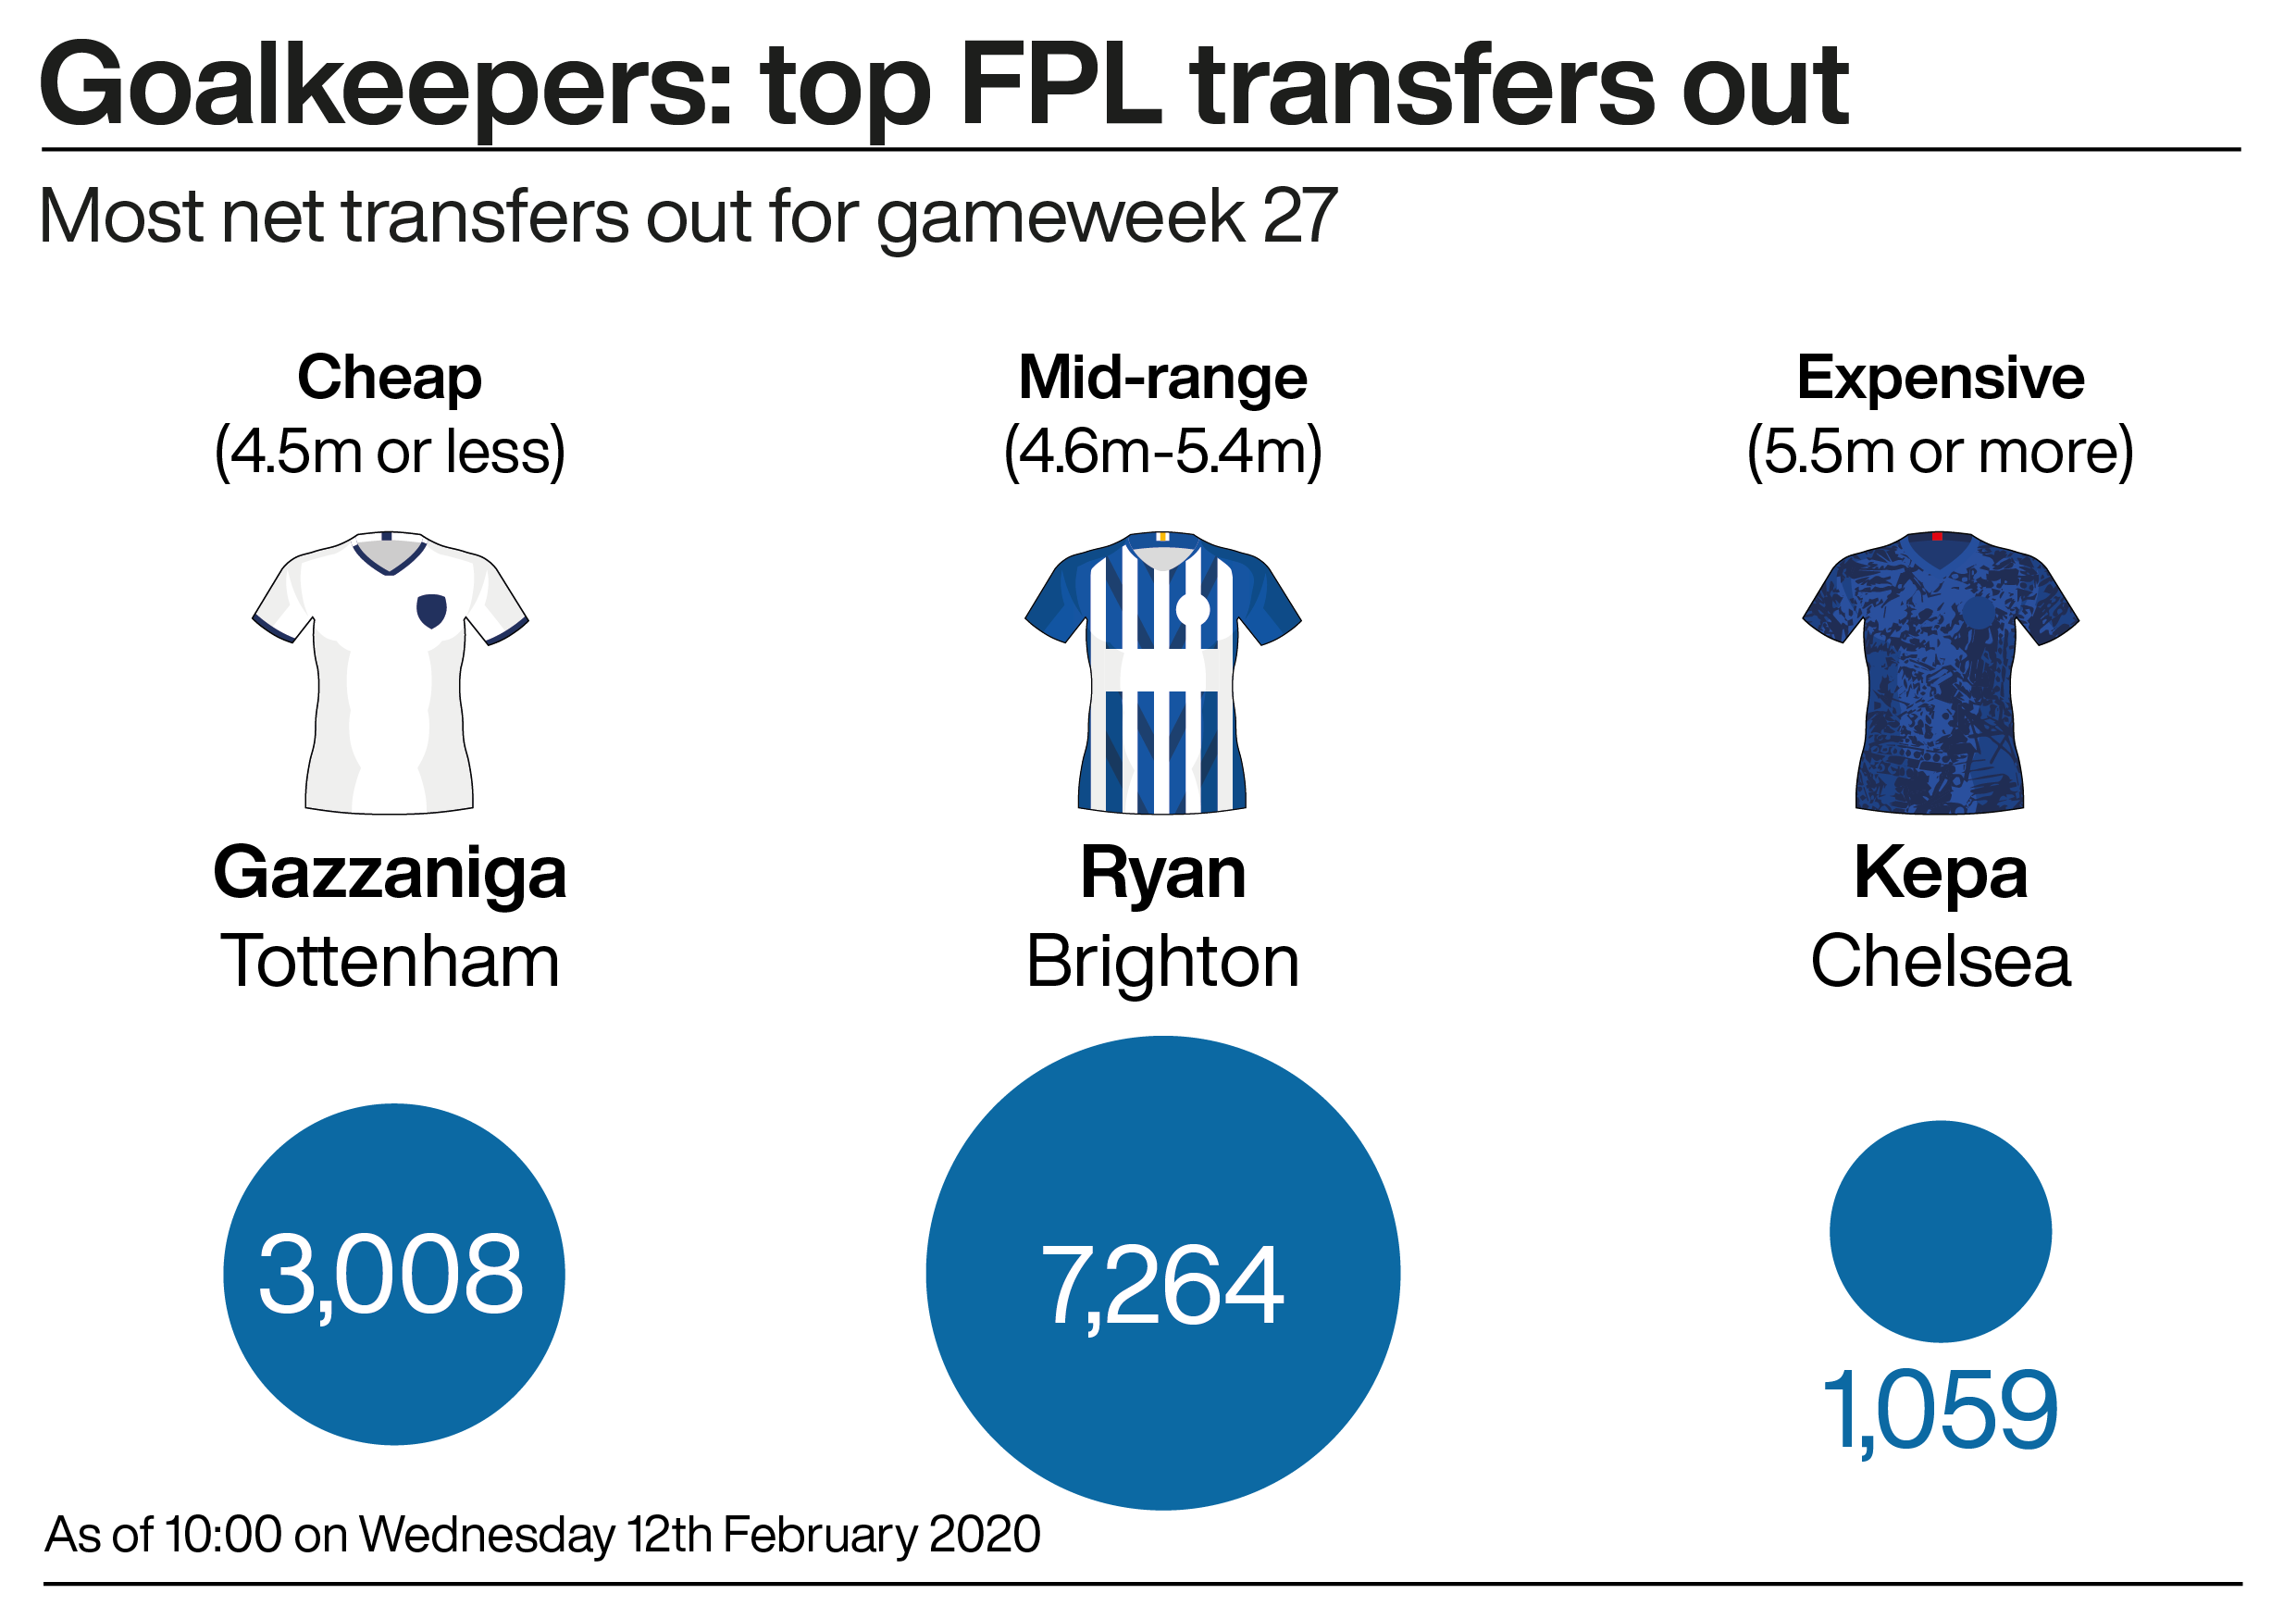 A graphic showing the most popular Fantasy Premier League goalkeepers ahead of gameweek 27